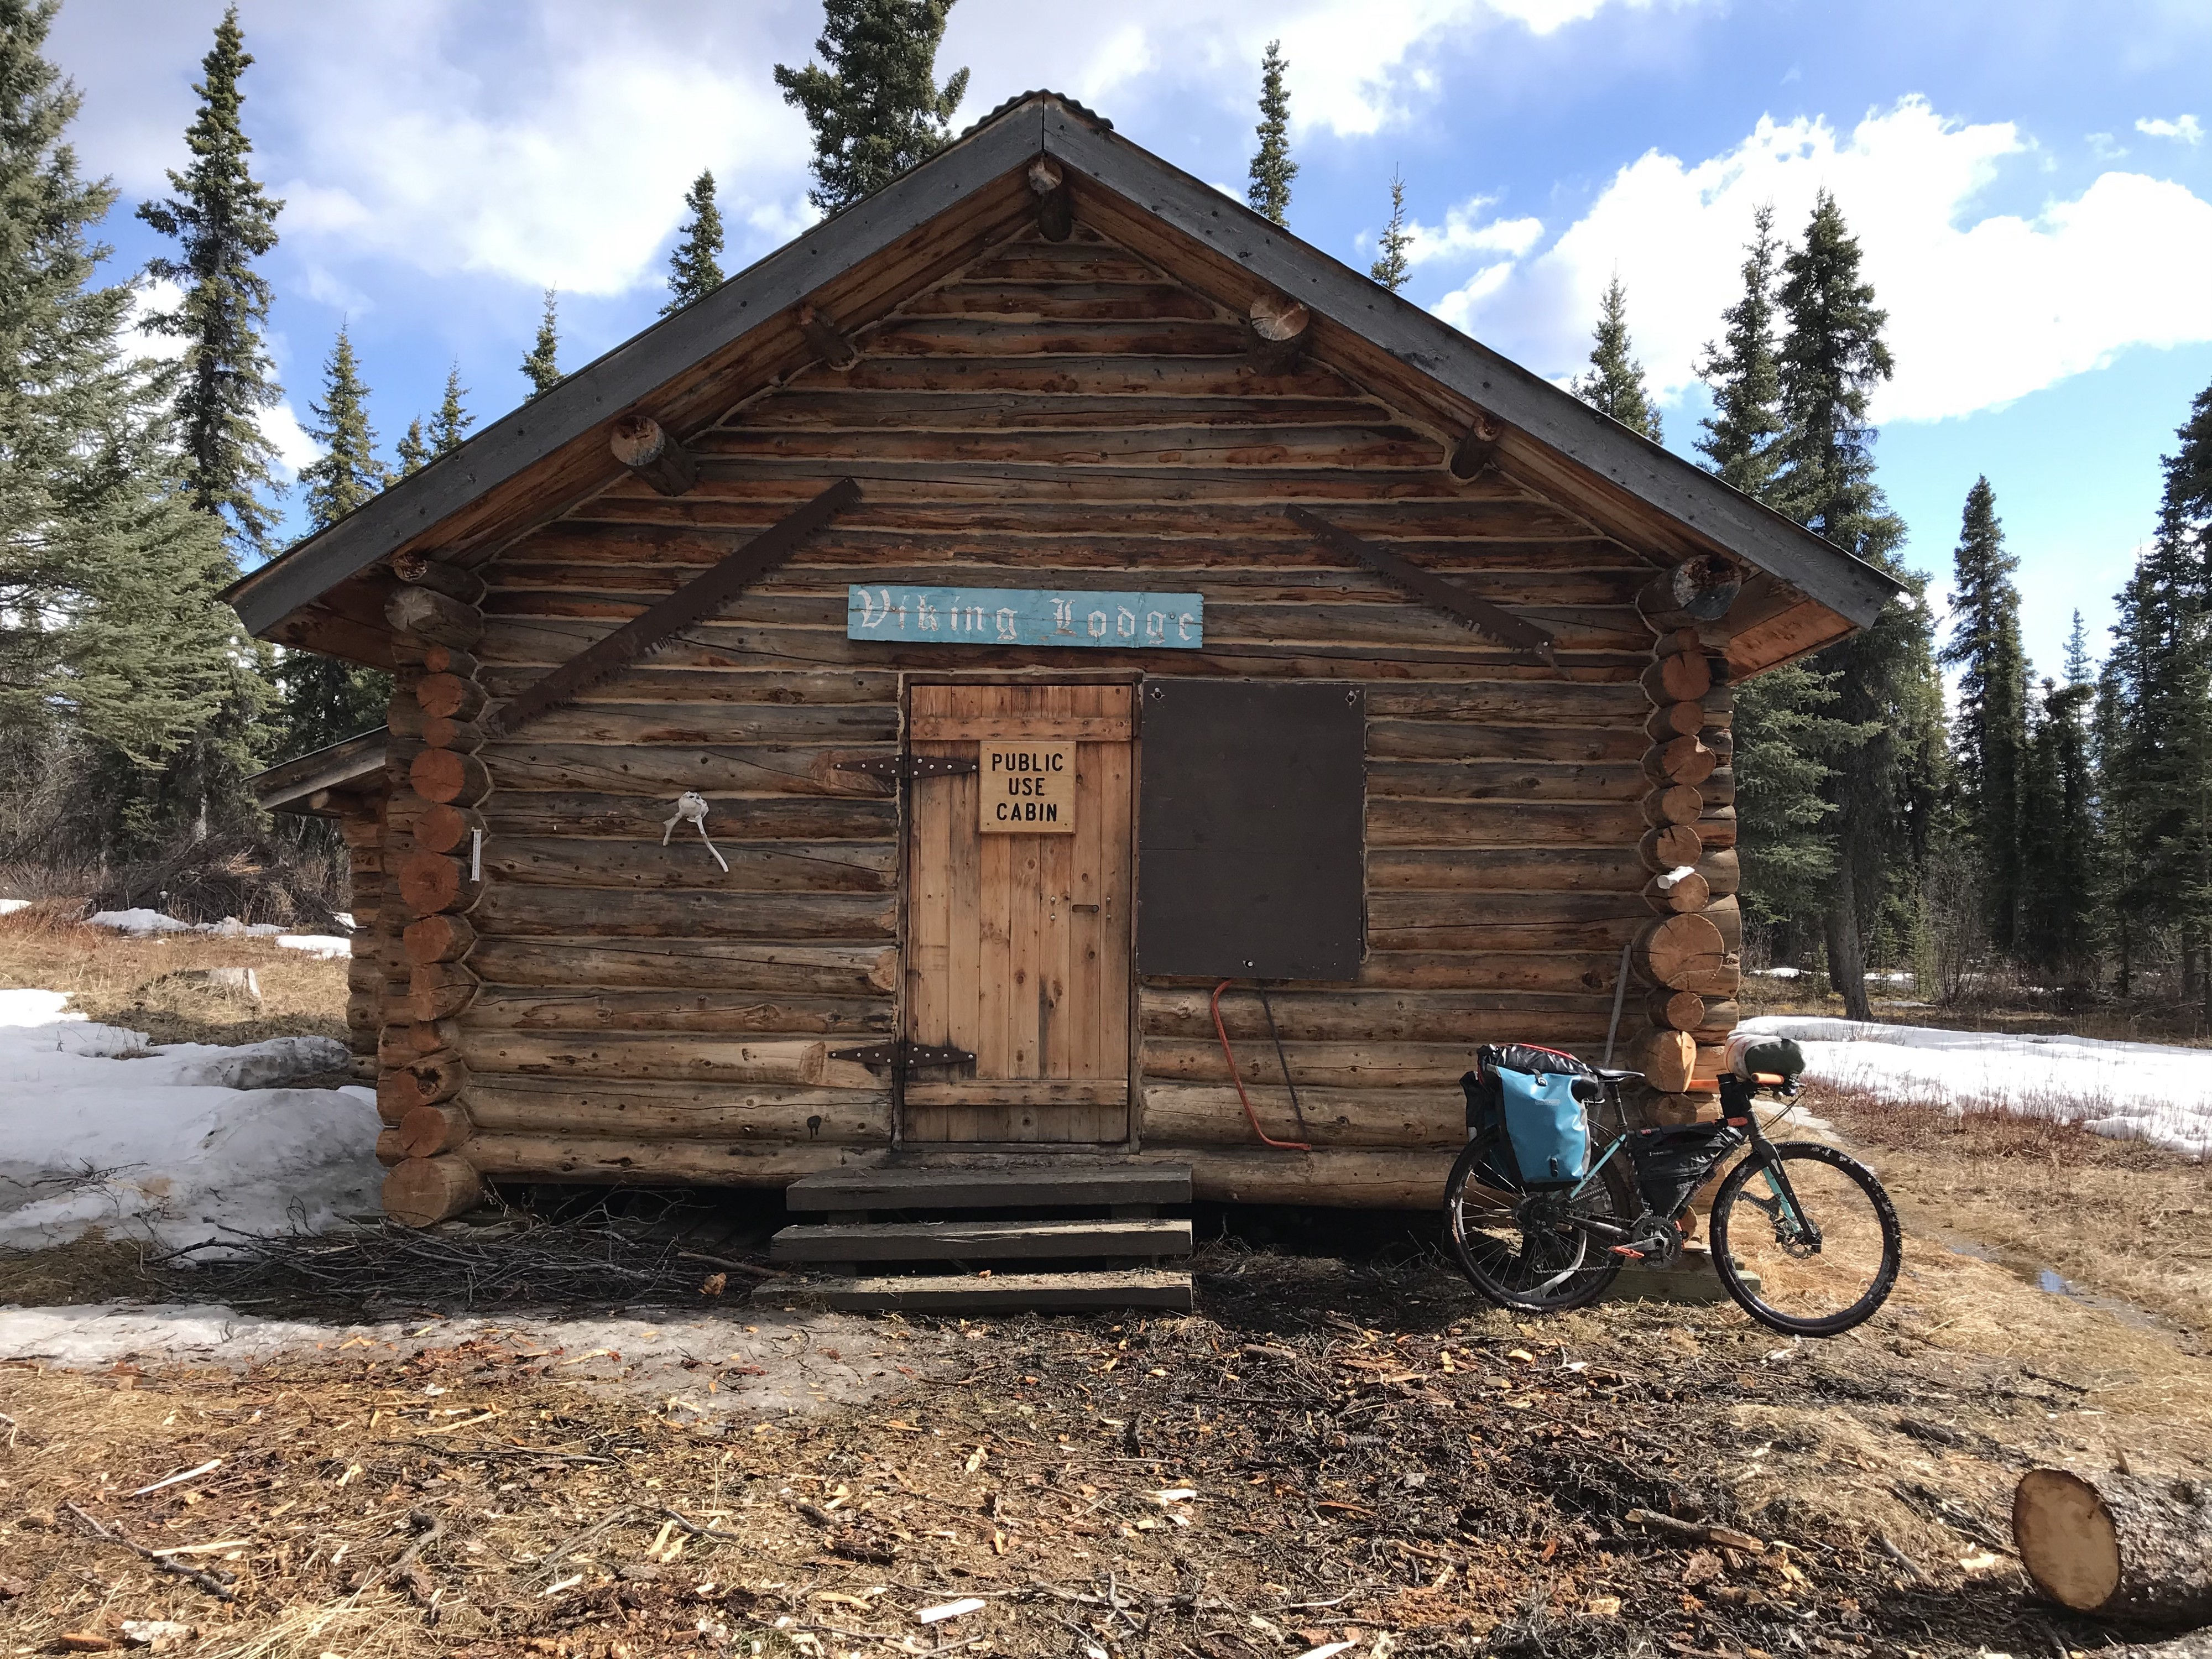 Bike propped up against the Viking Lodge, an old cabin.